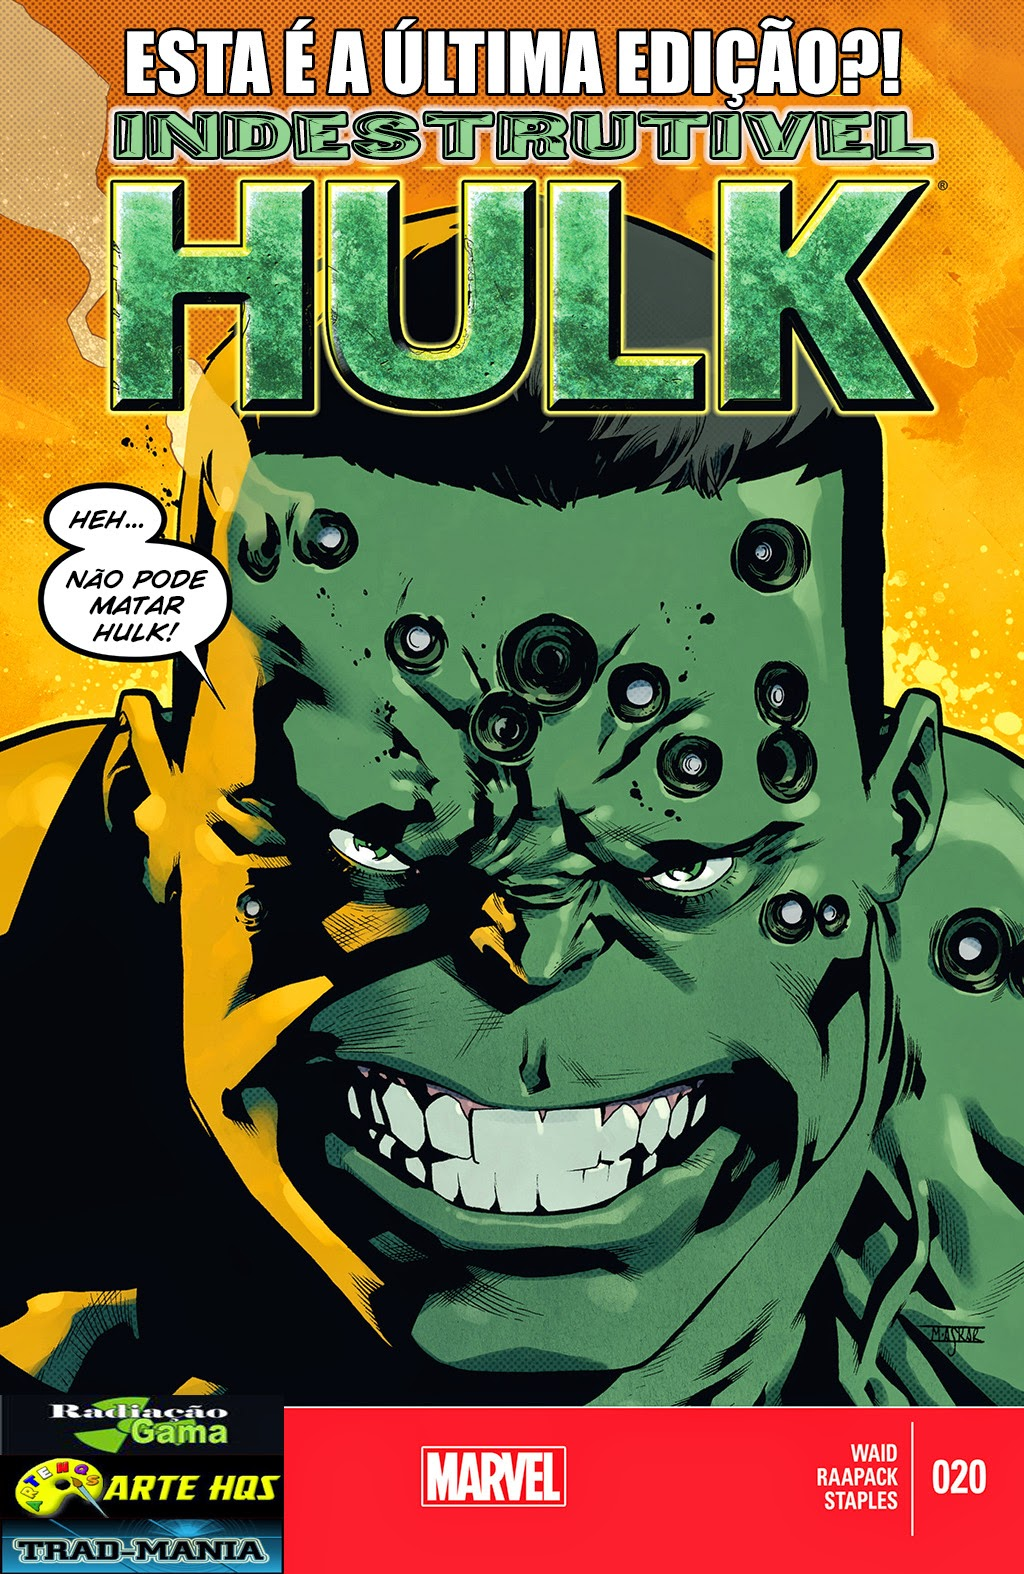 Nova Marvel! O Indestrutível Hulk #20